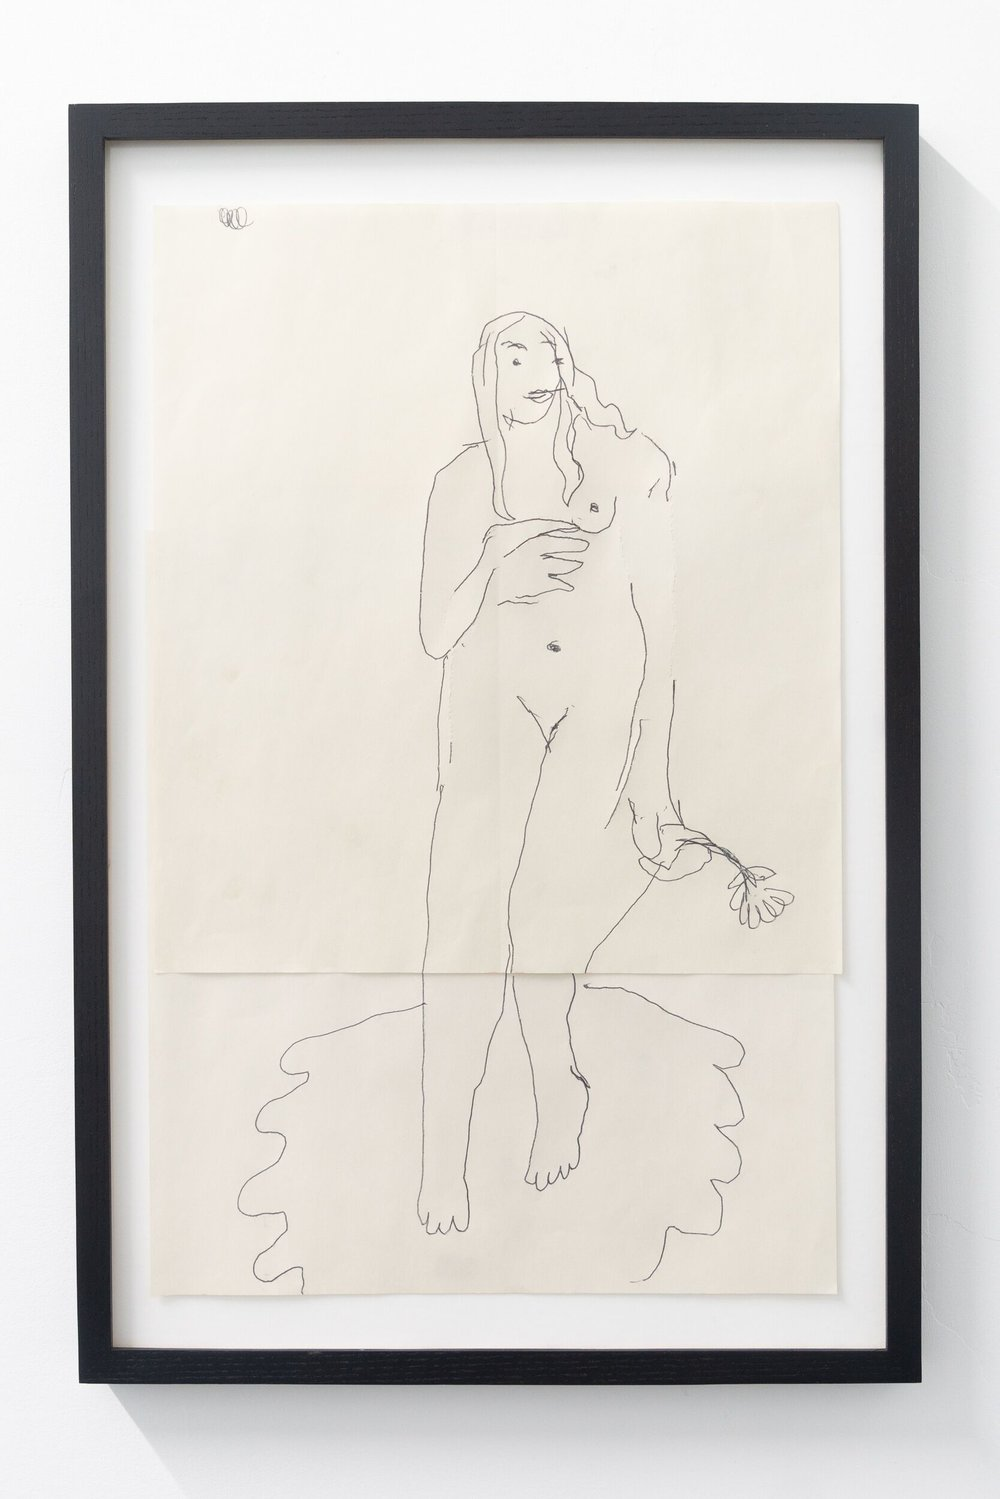 Emilie Gossiaux   Venus , 2018 Ink on newsprint 26 1/2 x 17 1/2 inches 67.3 x 44.5 cm